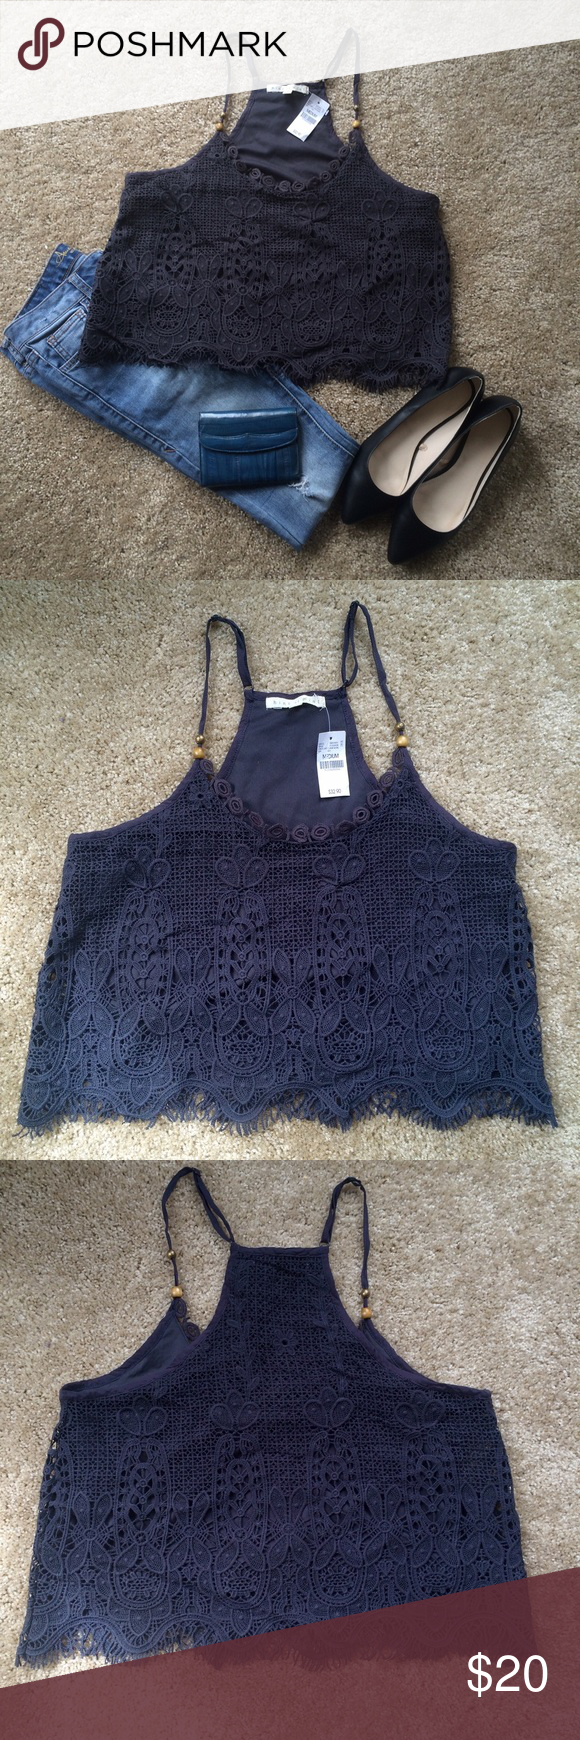 Ash Crochet Camisole Ash Crochet Camisole. Size M. Never worn with tags Wet Seal Tops Camisoles